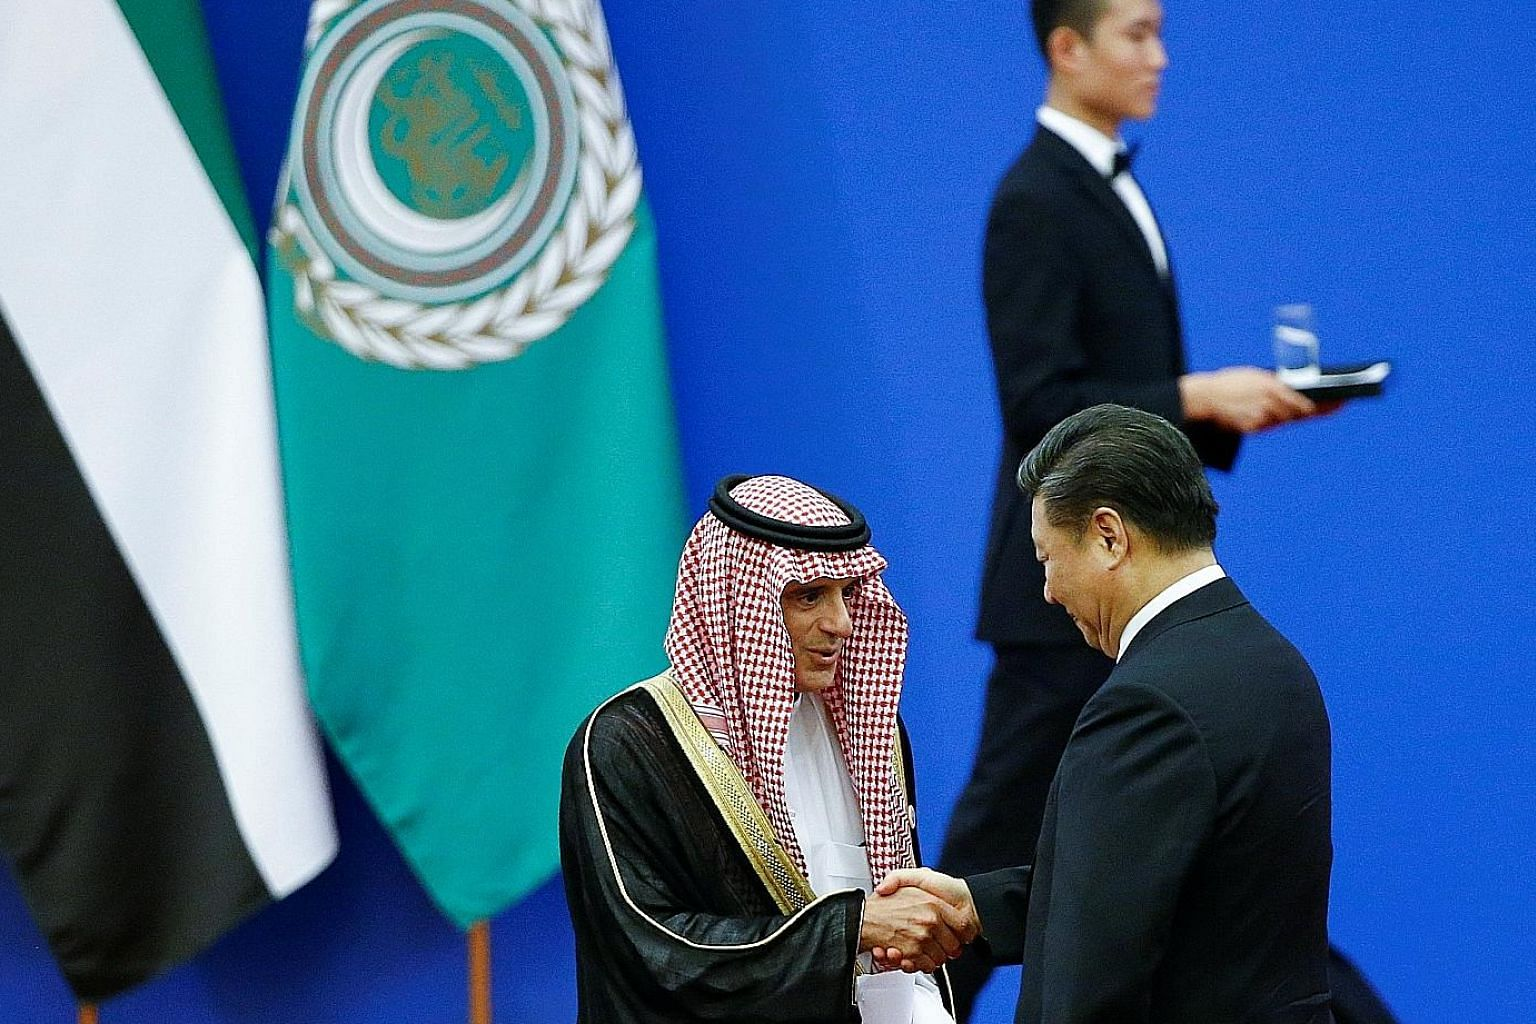 Chinese President Xi Jinping greeting Saudi Arabia's Foreign Minister Adel bin Ahmed Al-Jubeir at a China-Arab forum in Beijing yesterday.